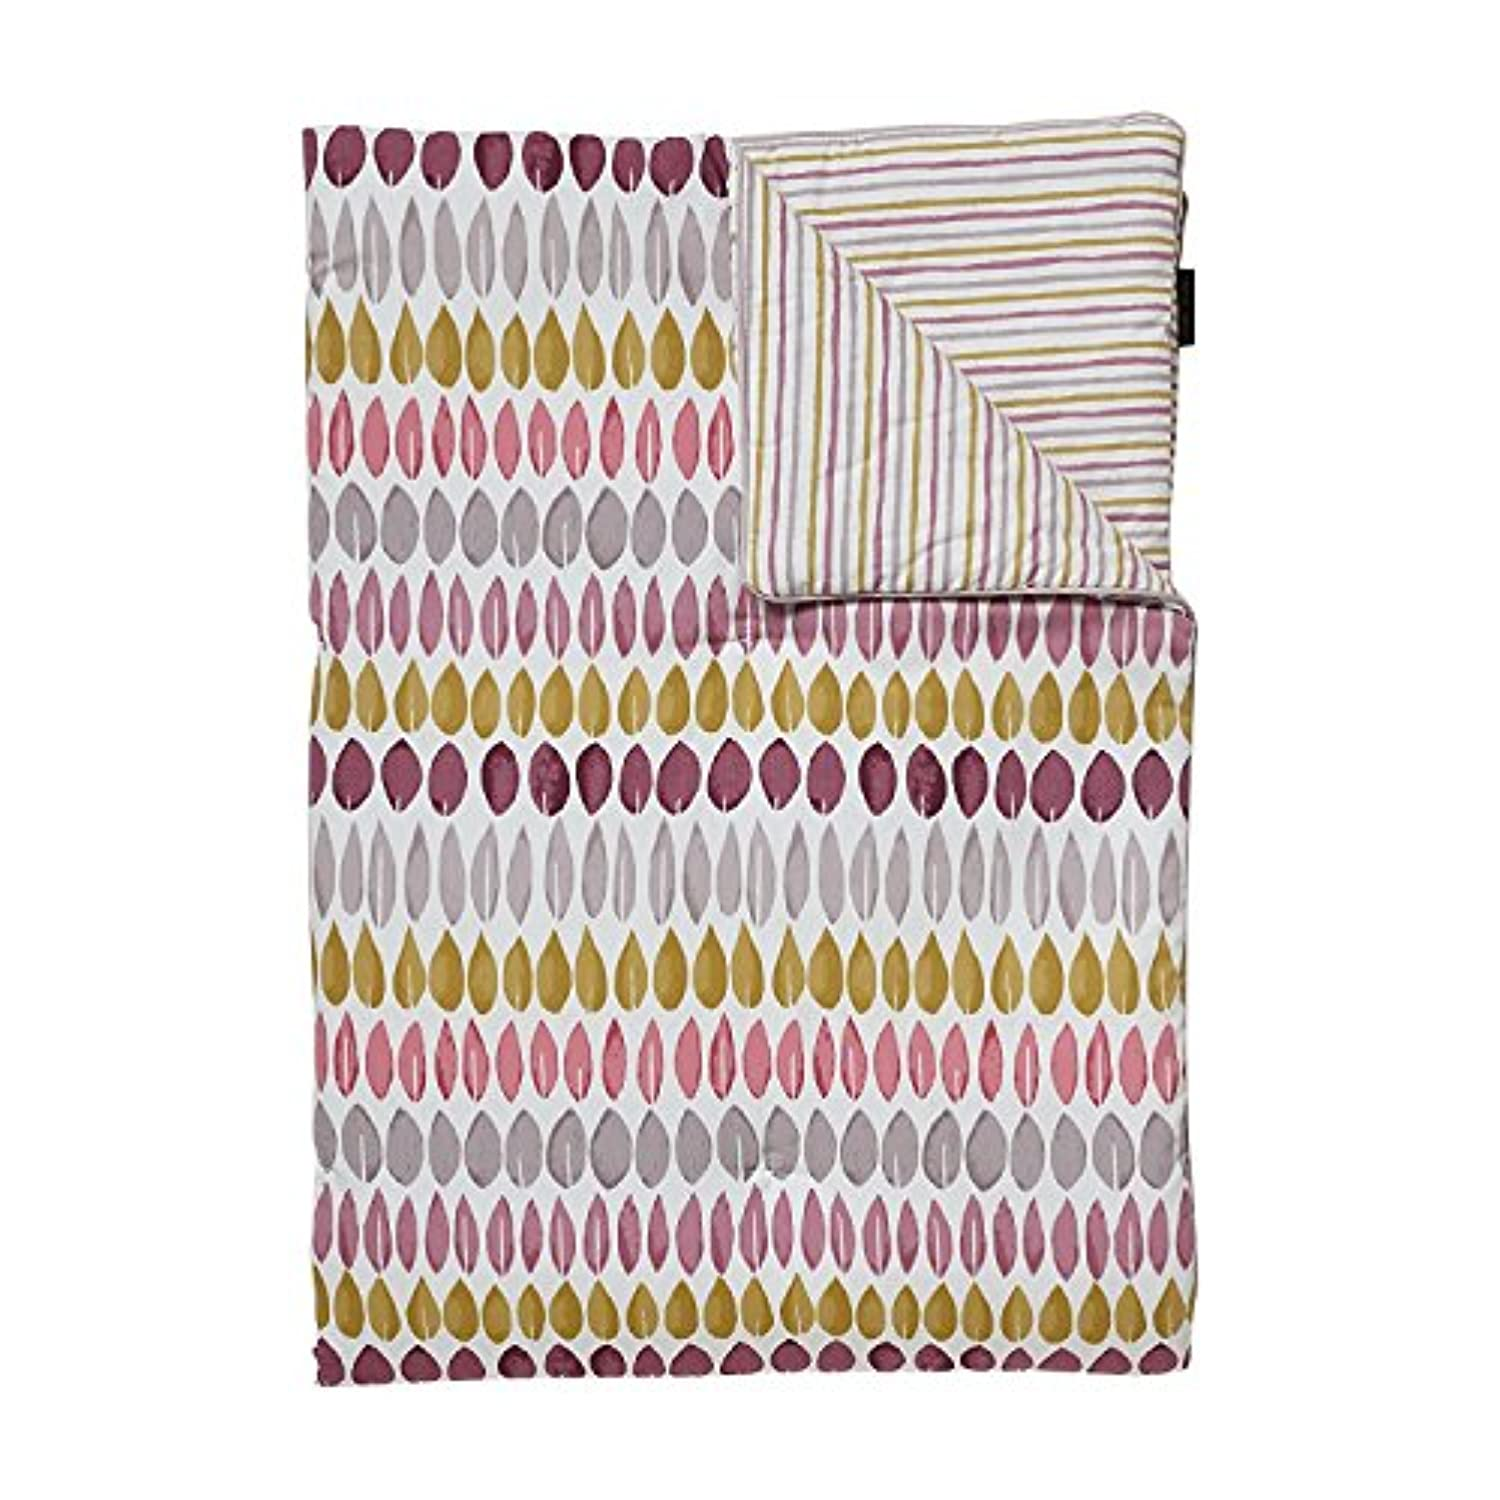 Dwell Studio Play and Toddler Bed Blanket, Aimee by Dwell Studio